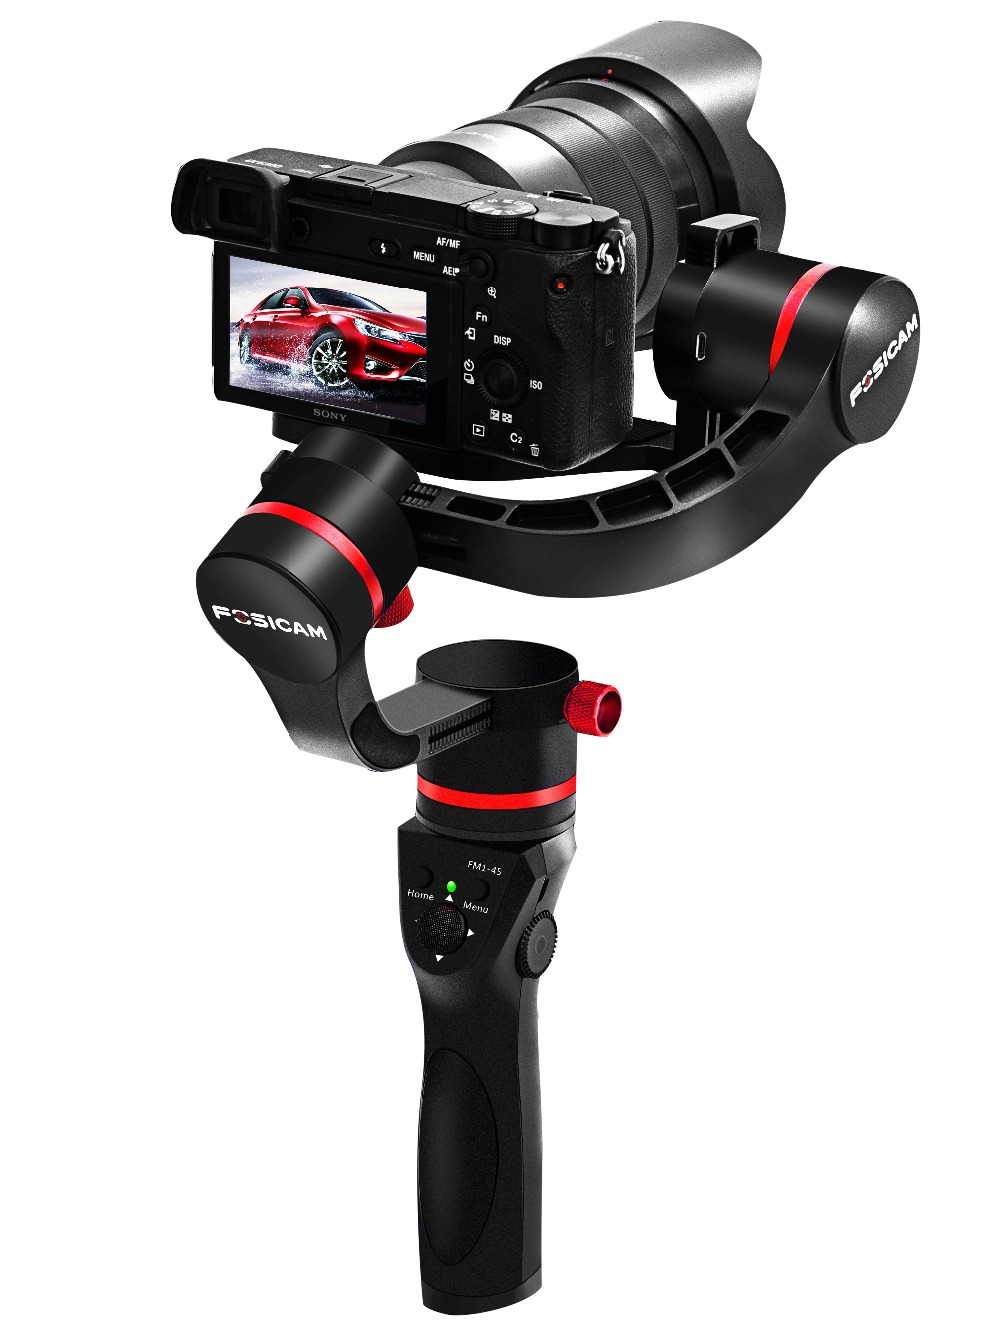 3 axis handheld encorder gimbal stabilizer for mirrorless micro DSLR cameras 45 degrees up to 3